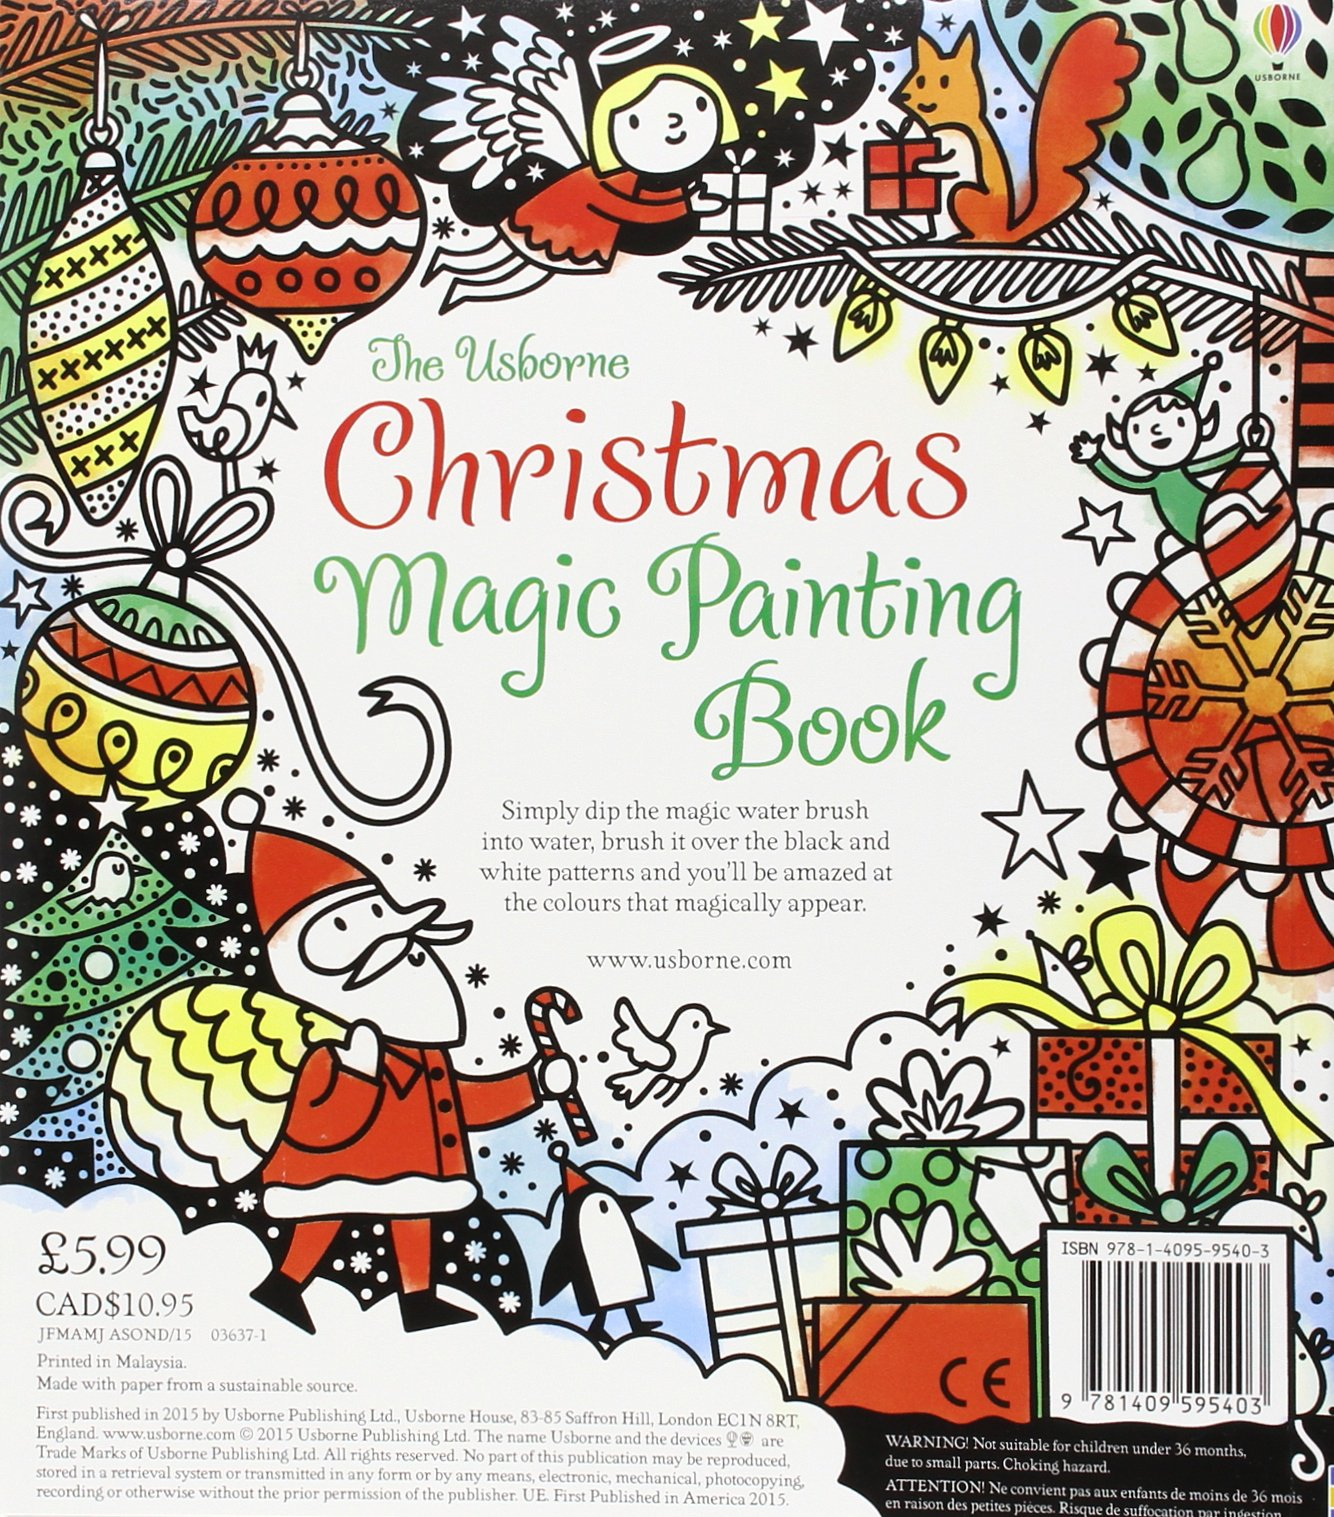 91uBEstCT%2BL together with the usborne book of drawing doodling and coloring for christmas on usborne christmas coloring book additionally usborne books more christmas pocket doodling and coloring book on usborne christmas coloring book furthermore christmas colouring books from usborne on usborne christmas coloring book along with 15 adult coloring book on usborne christmas coloring book